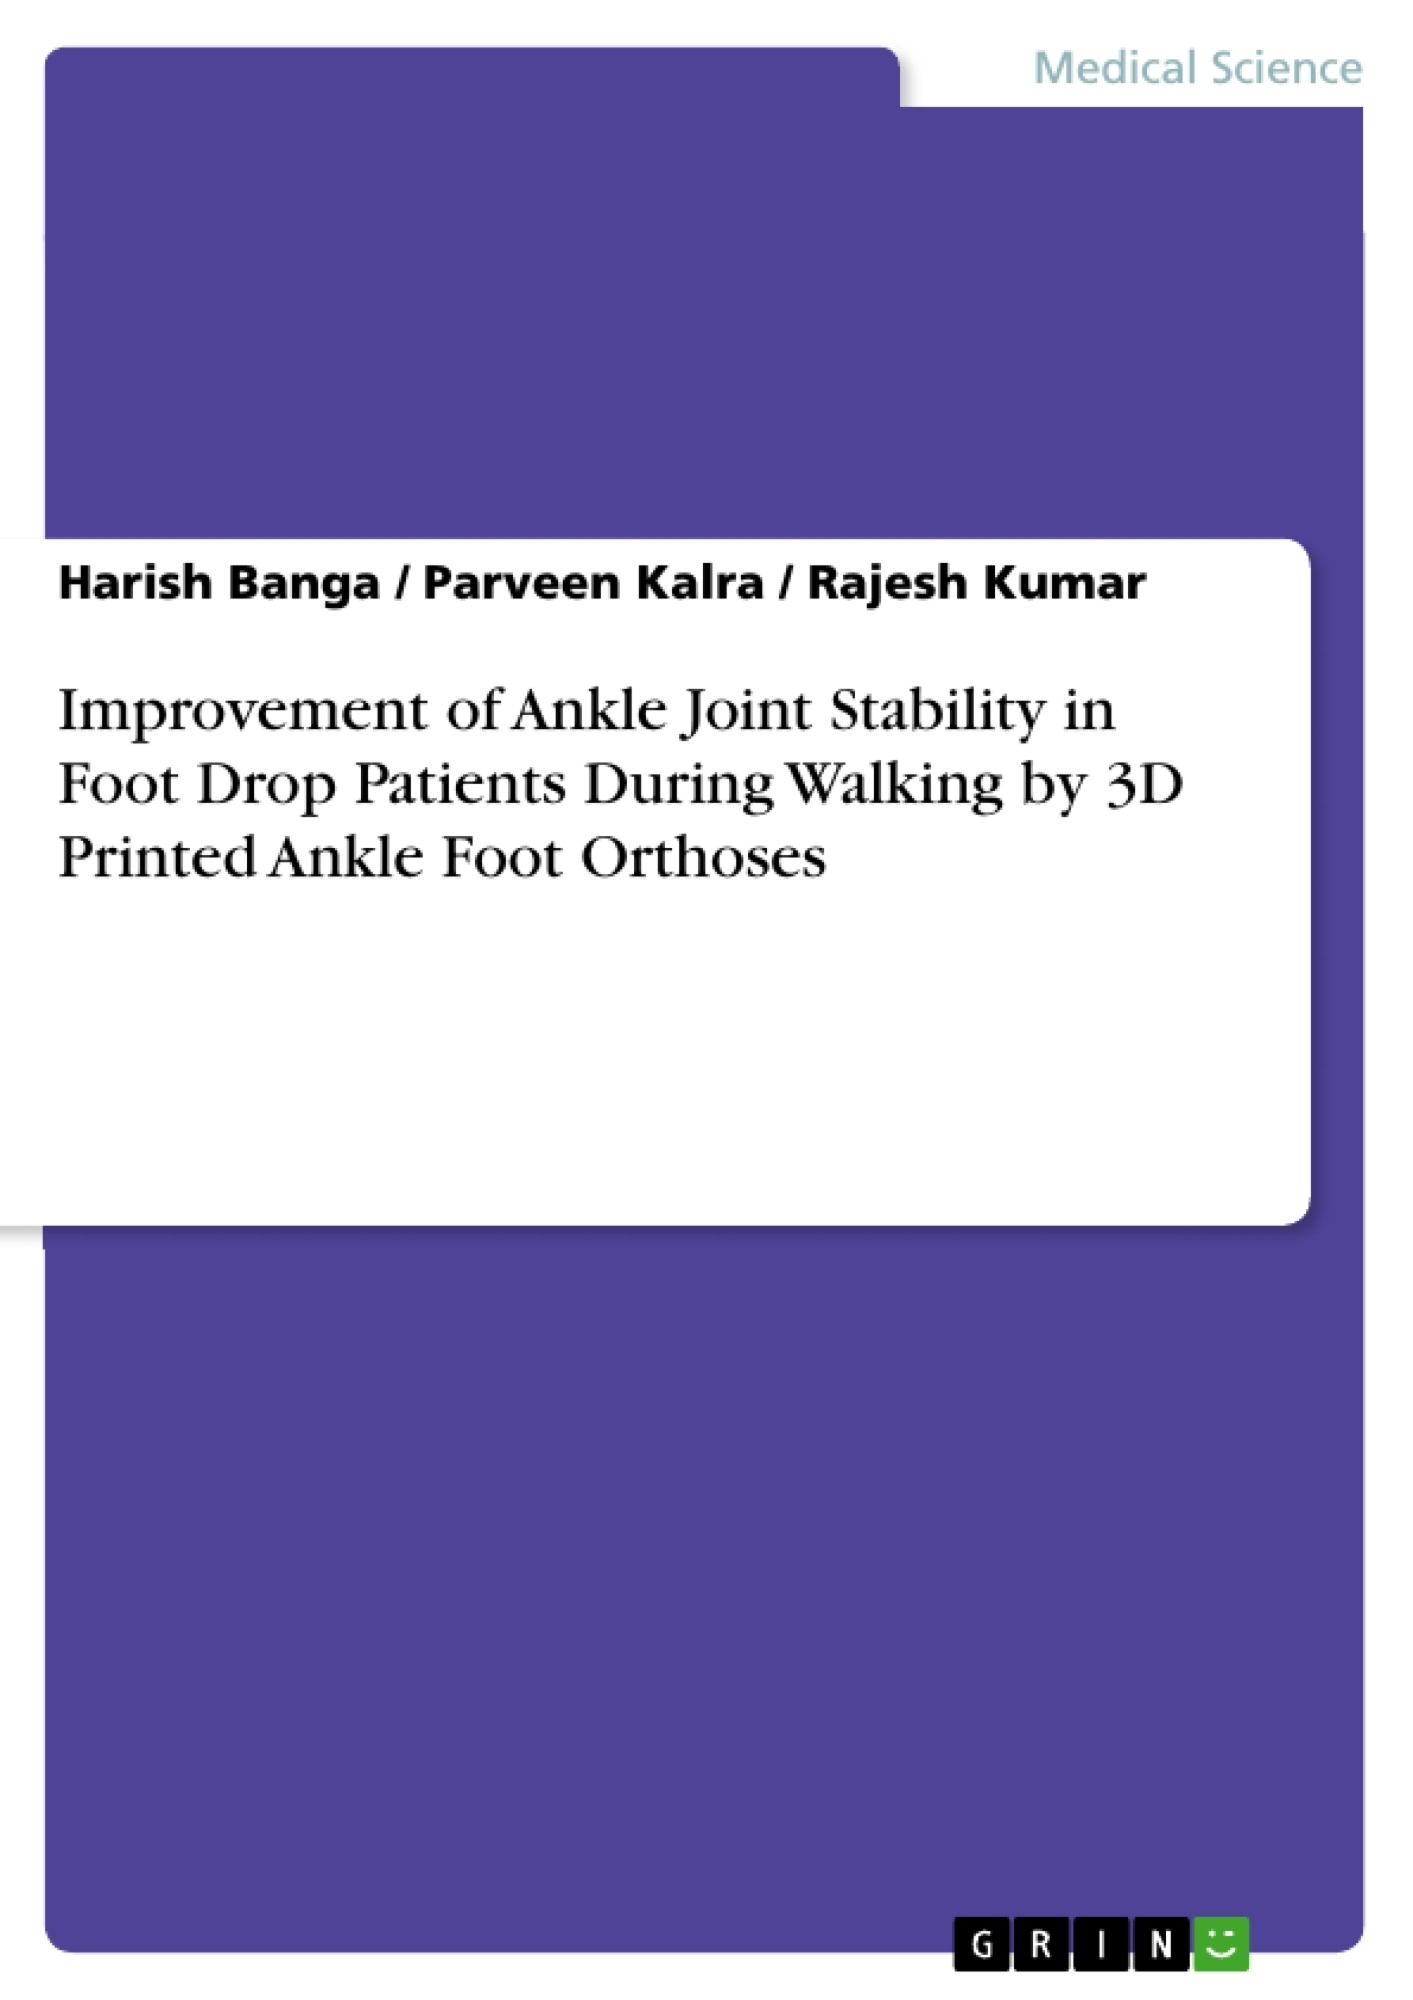 Title: Improvement of Ankle Joint Stability in Foot Drop Patients During Walking by 3D Printed Ankle Foot Orthoses